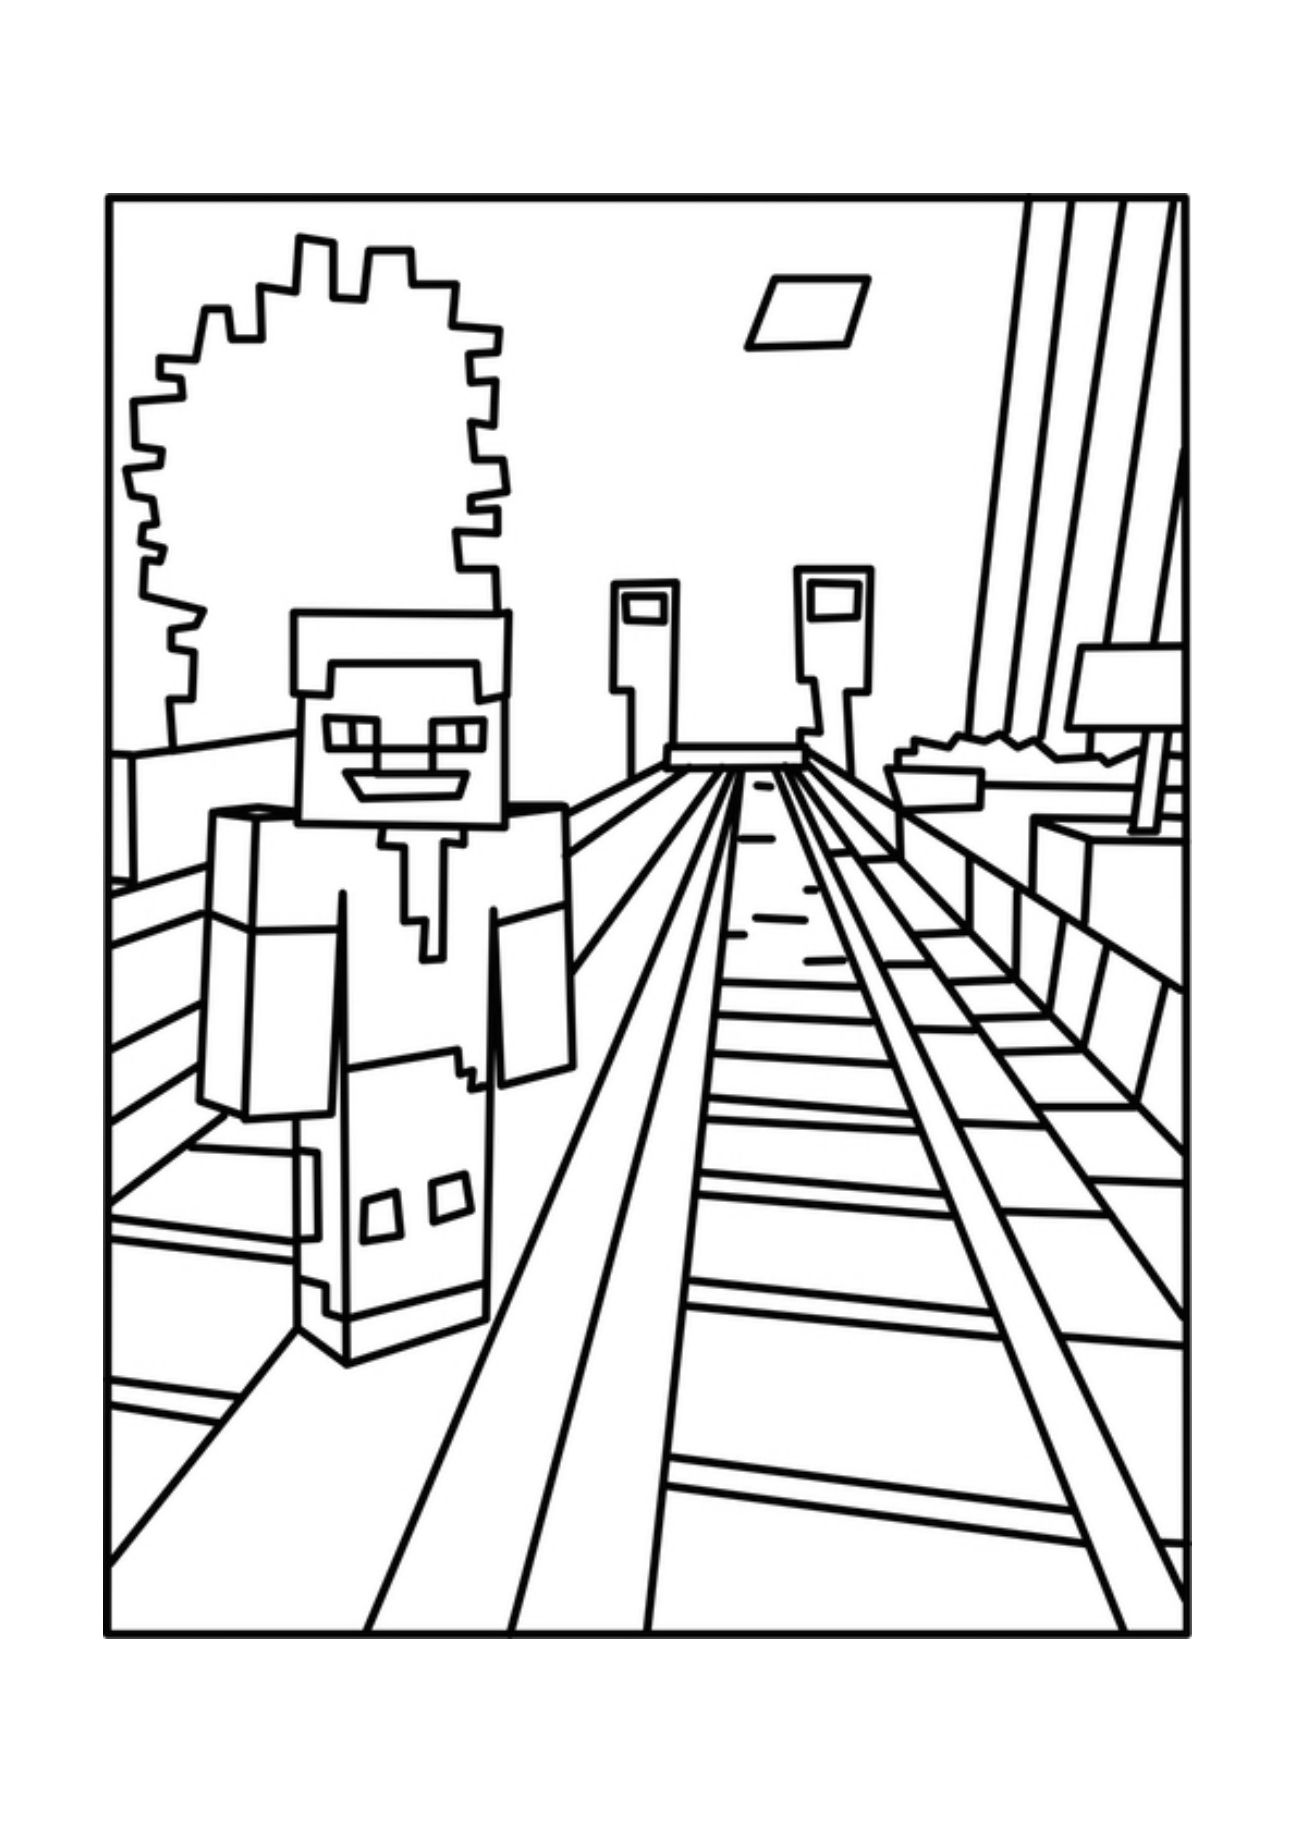 minecraft colouring pages free minecraft logo coloring pages at getcoloringscom free minecraft pages free colouring